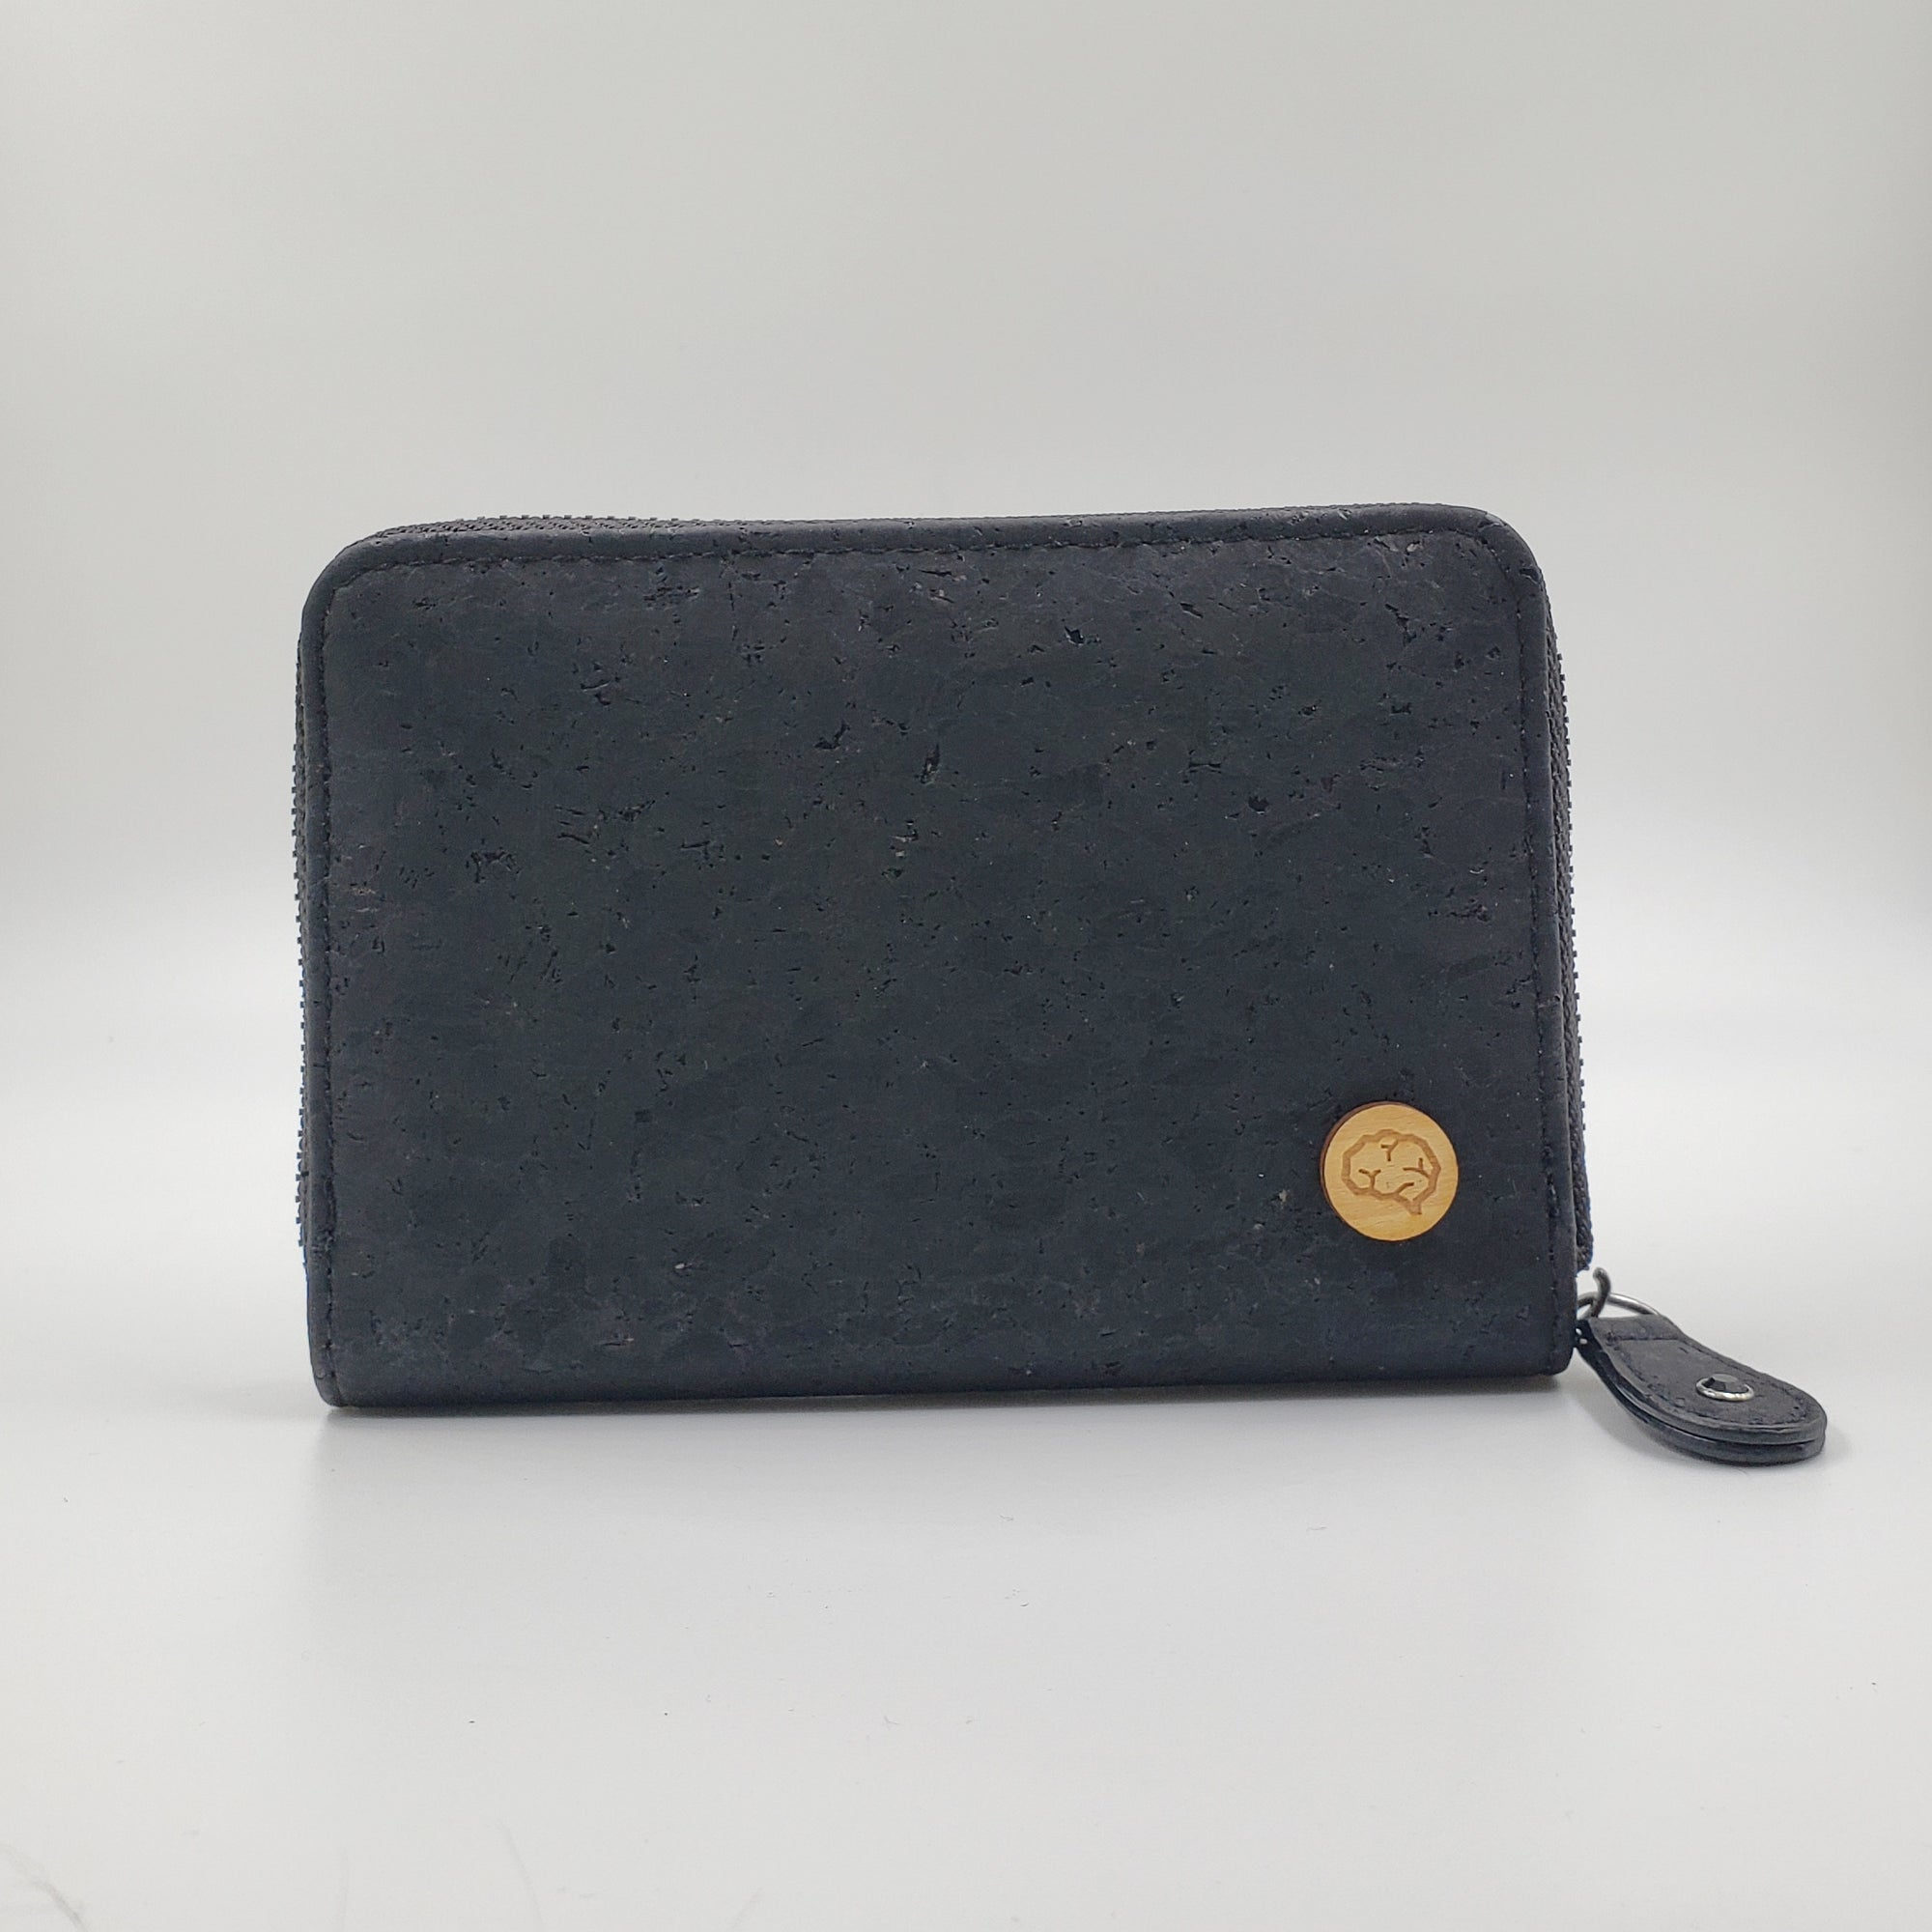 BILLETERA CORK BLACK